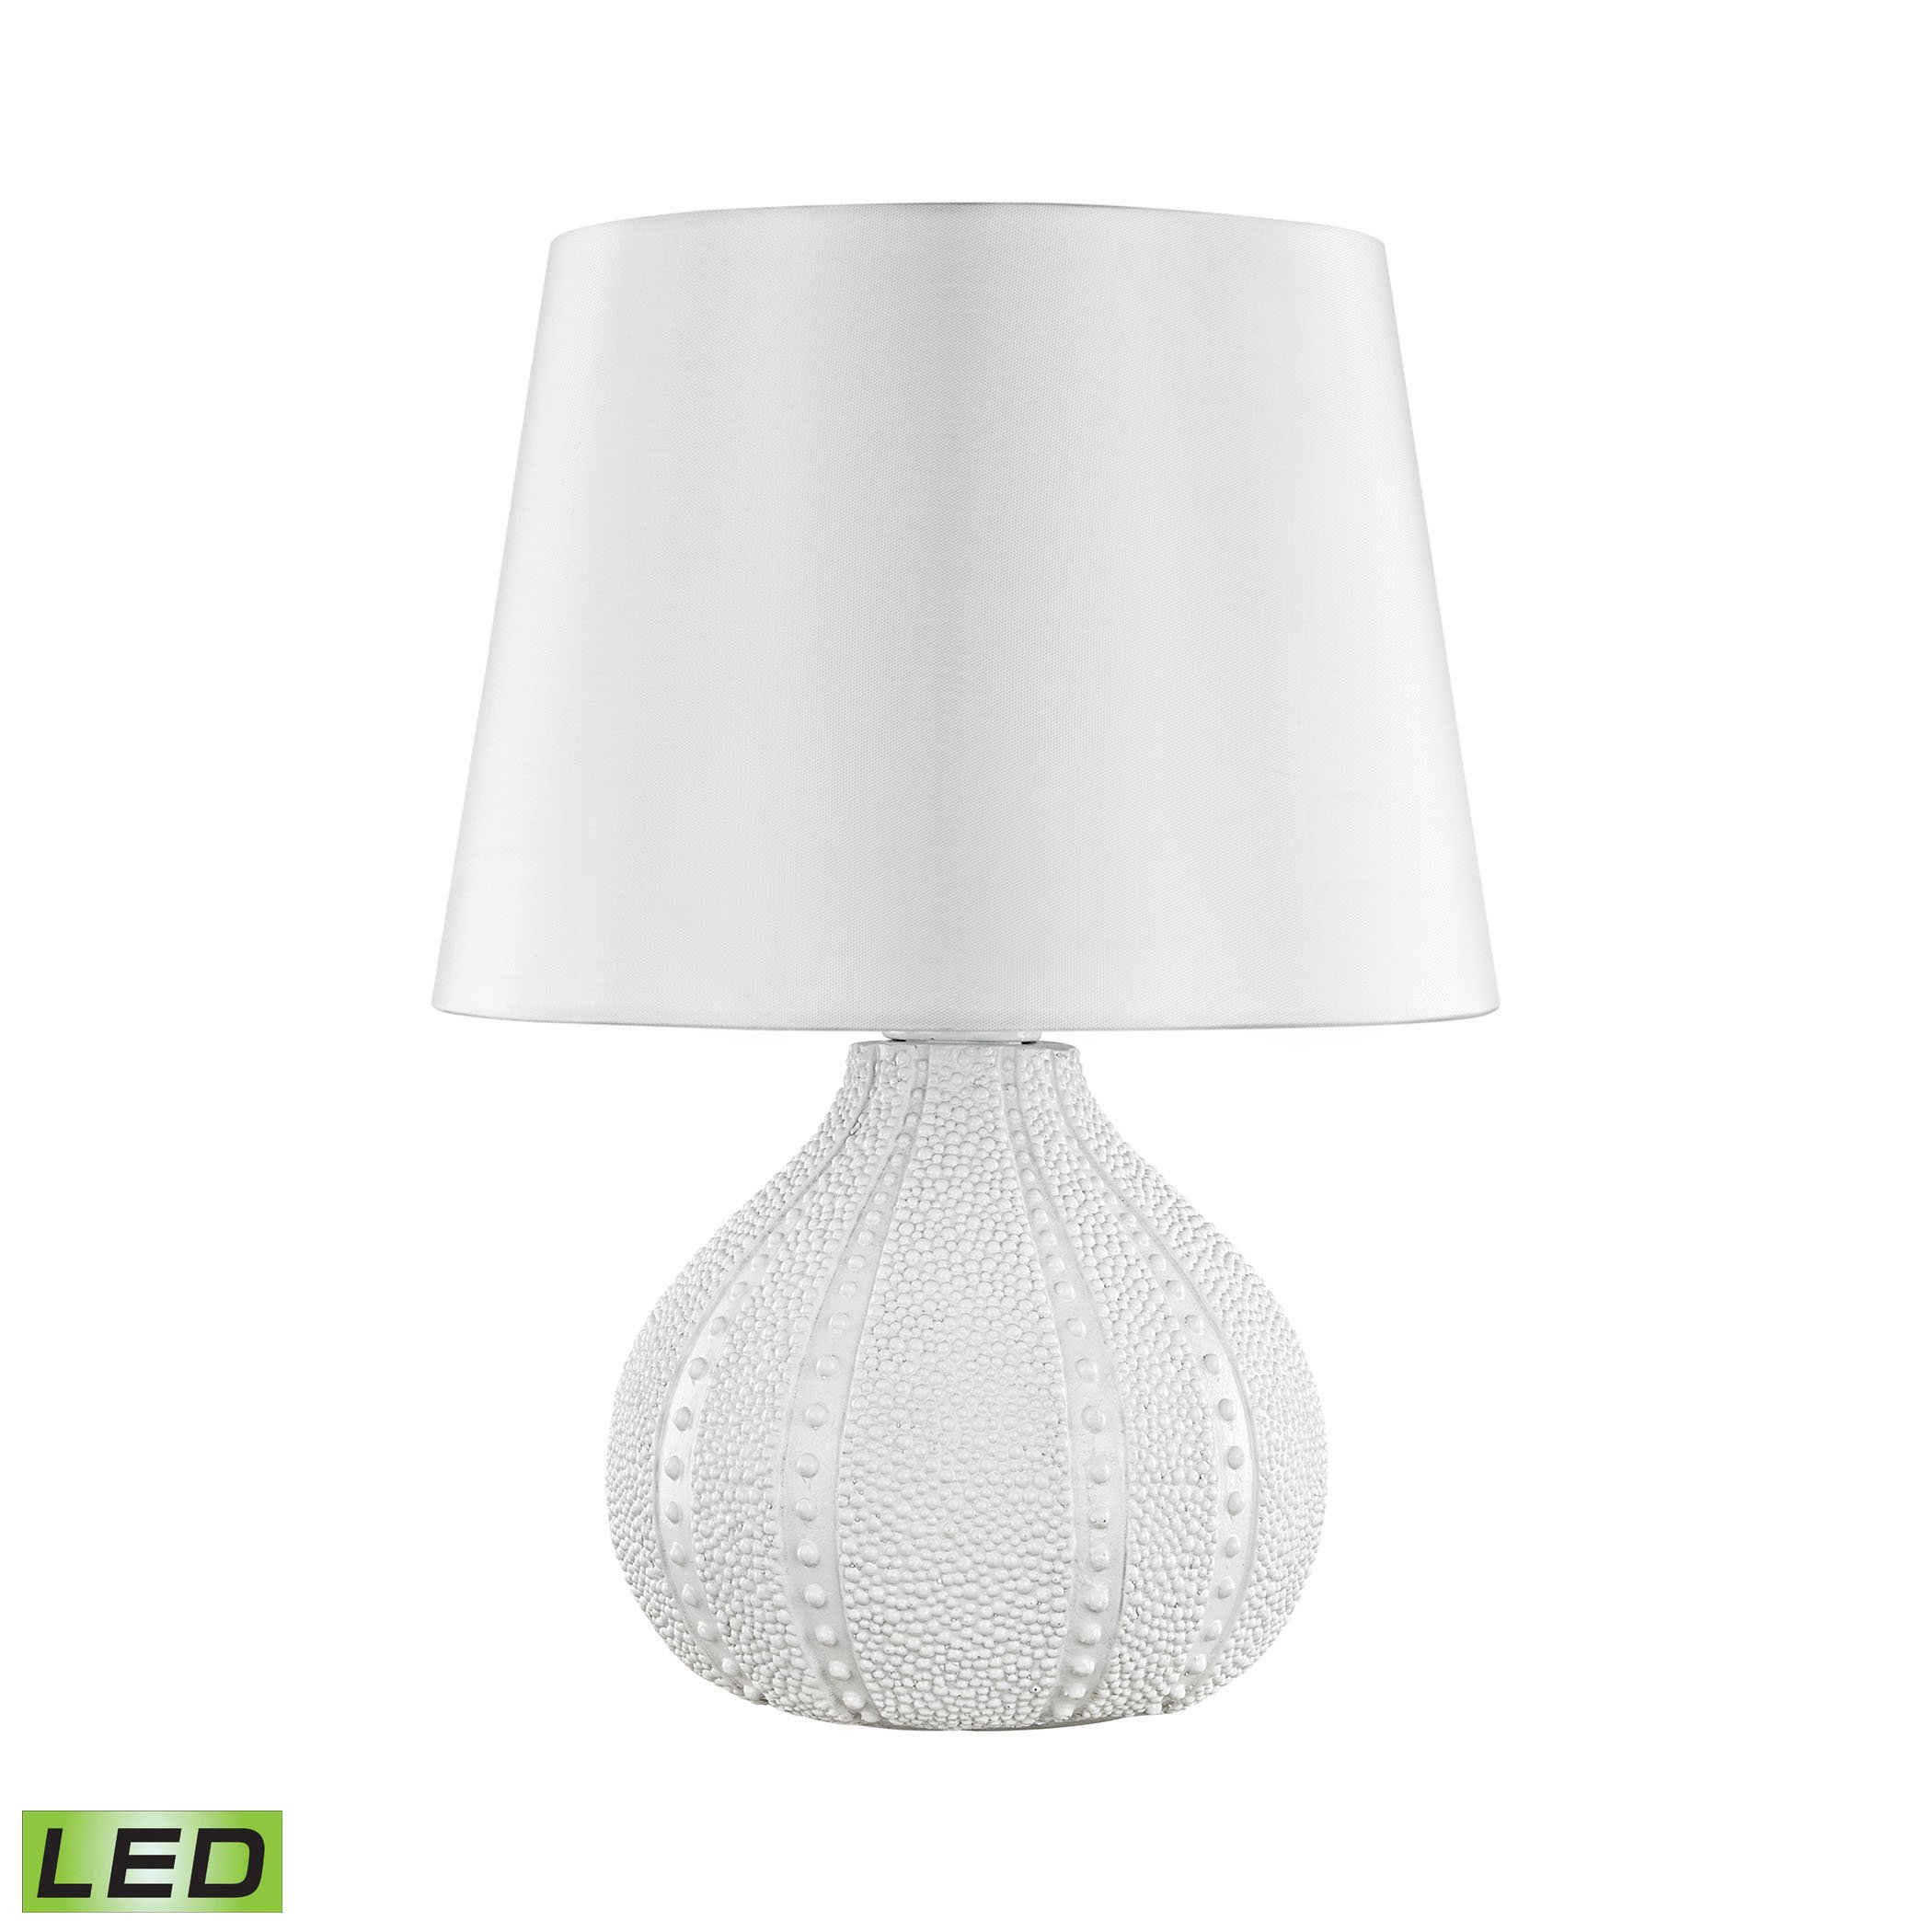 Aruba Outdoor LED Table Lamp With Pure White Shade by AR Lighting